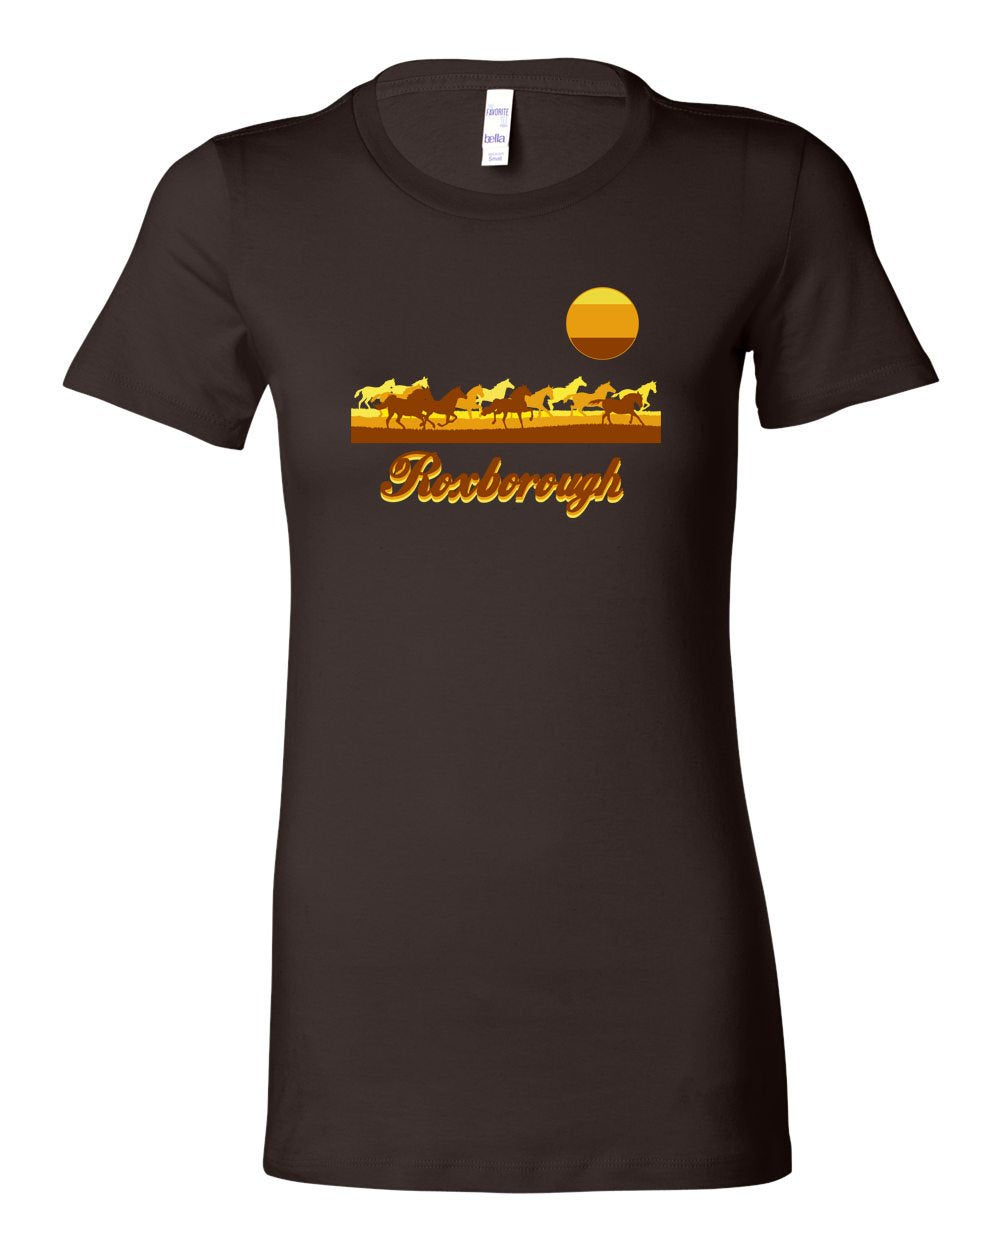 Roxborough LADIES Junior-Fit T-Shirt